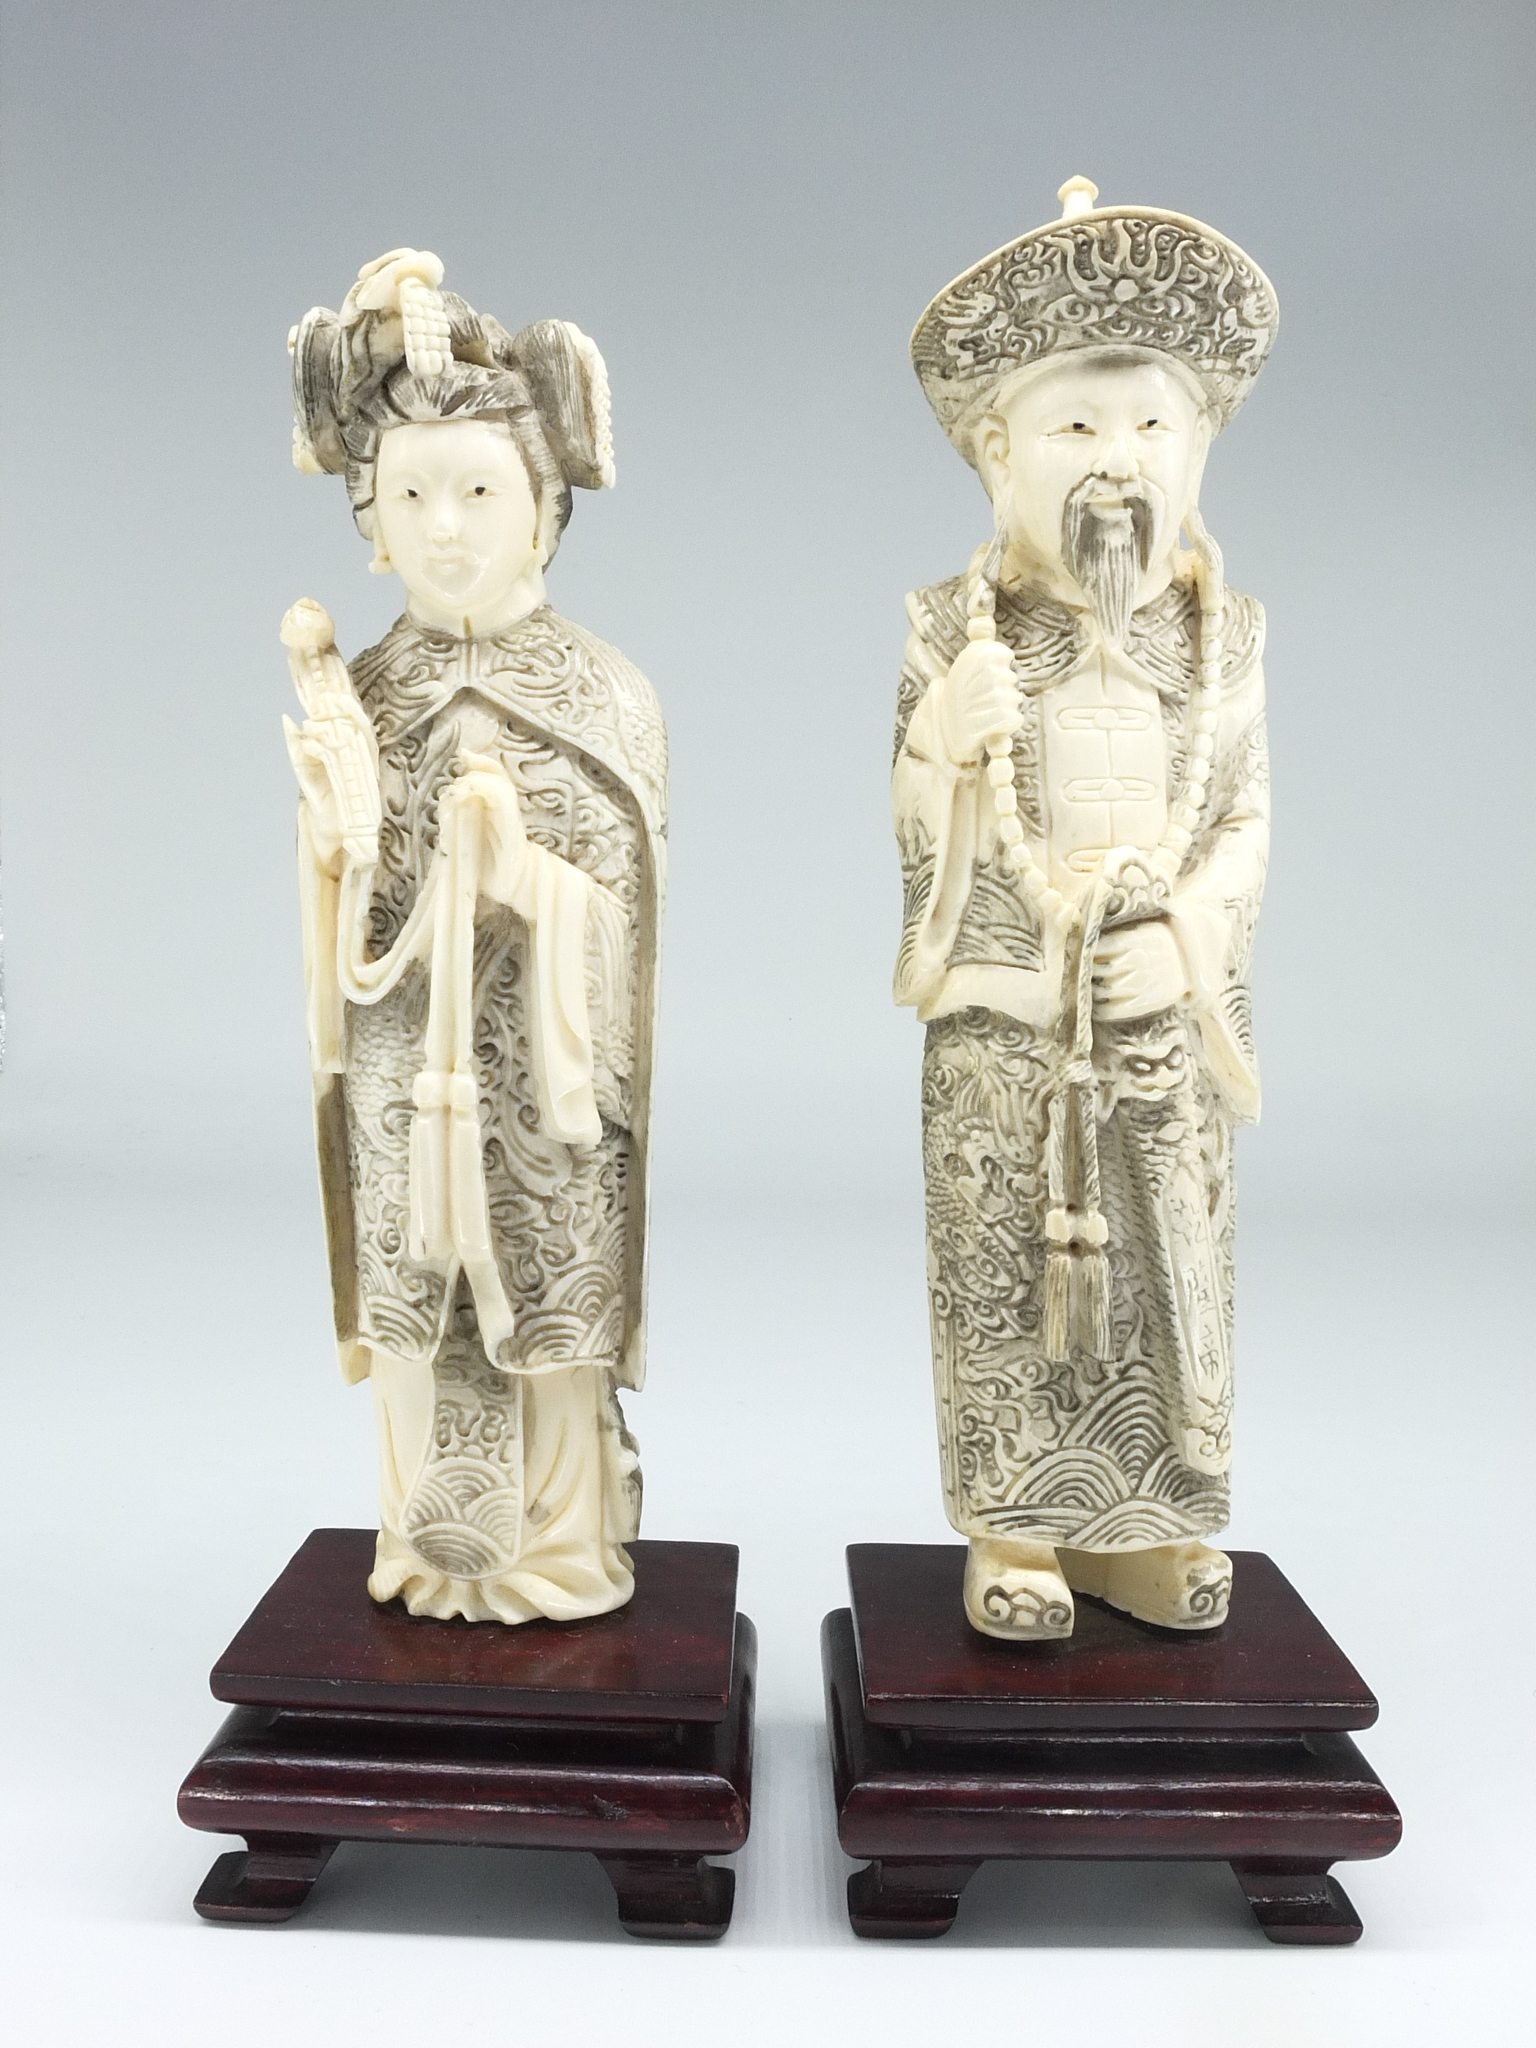 'Chinese Elephant Ivory Emperor and Empress Figures Early to Mid 20th Century'